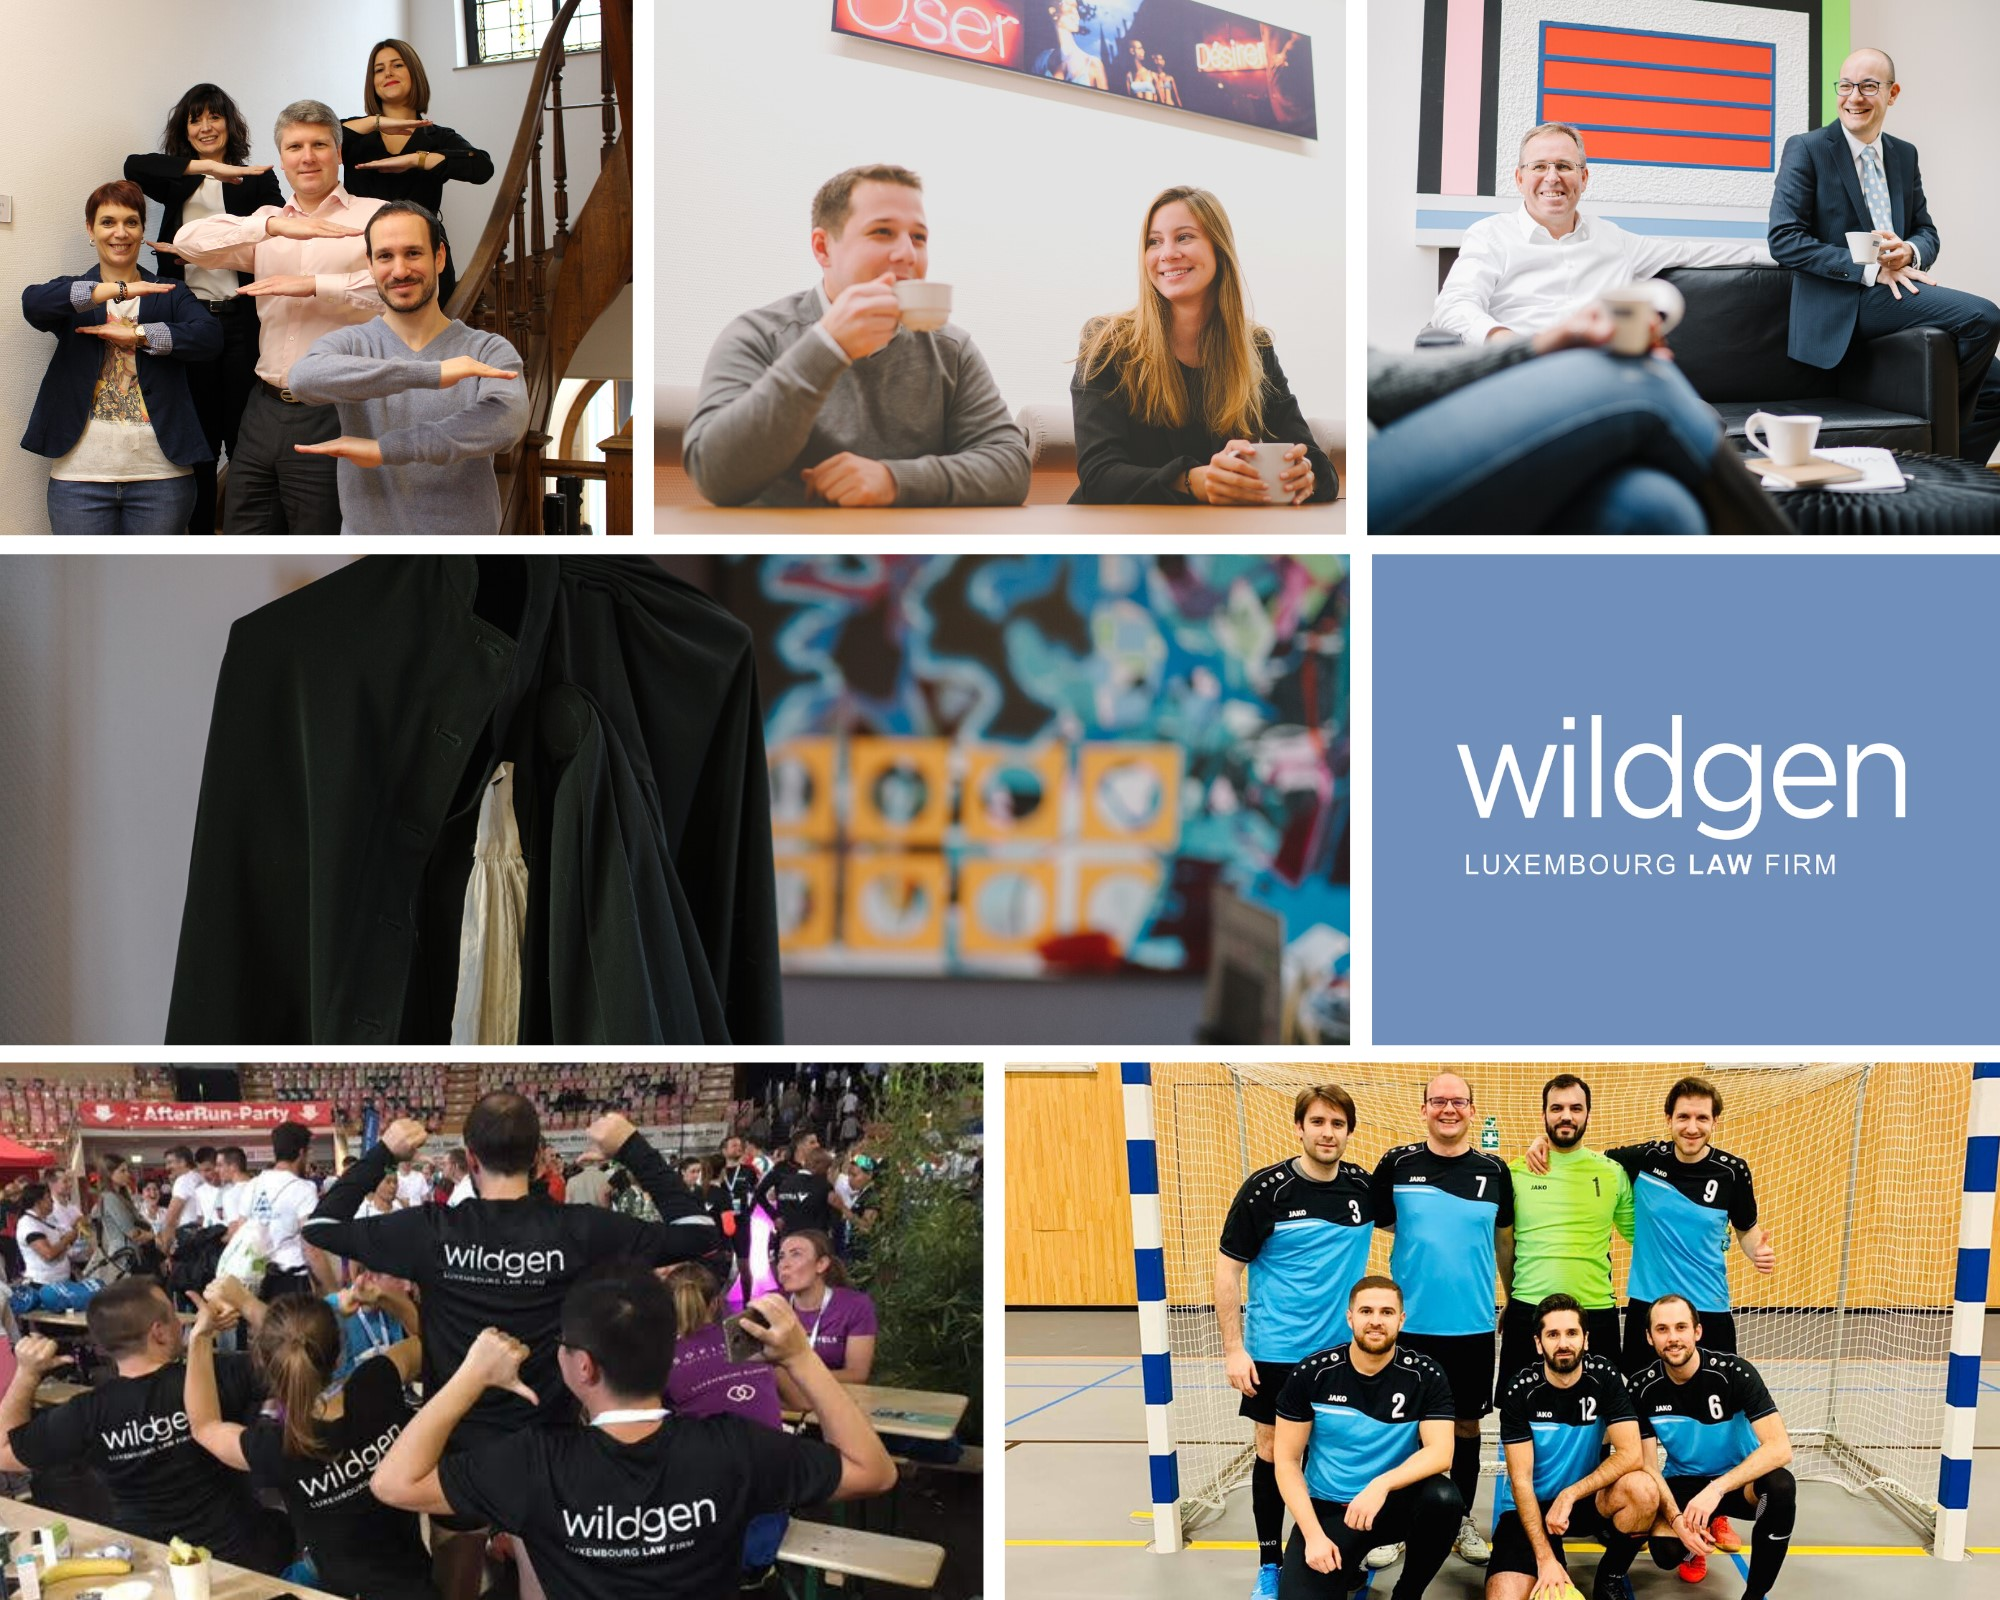 10 questions avec Wildgen : #6 Medium Best Workplaces Luxembourg